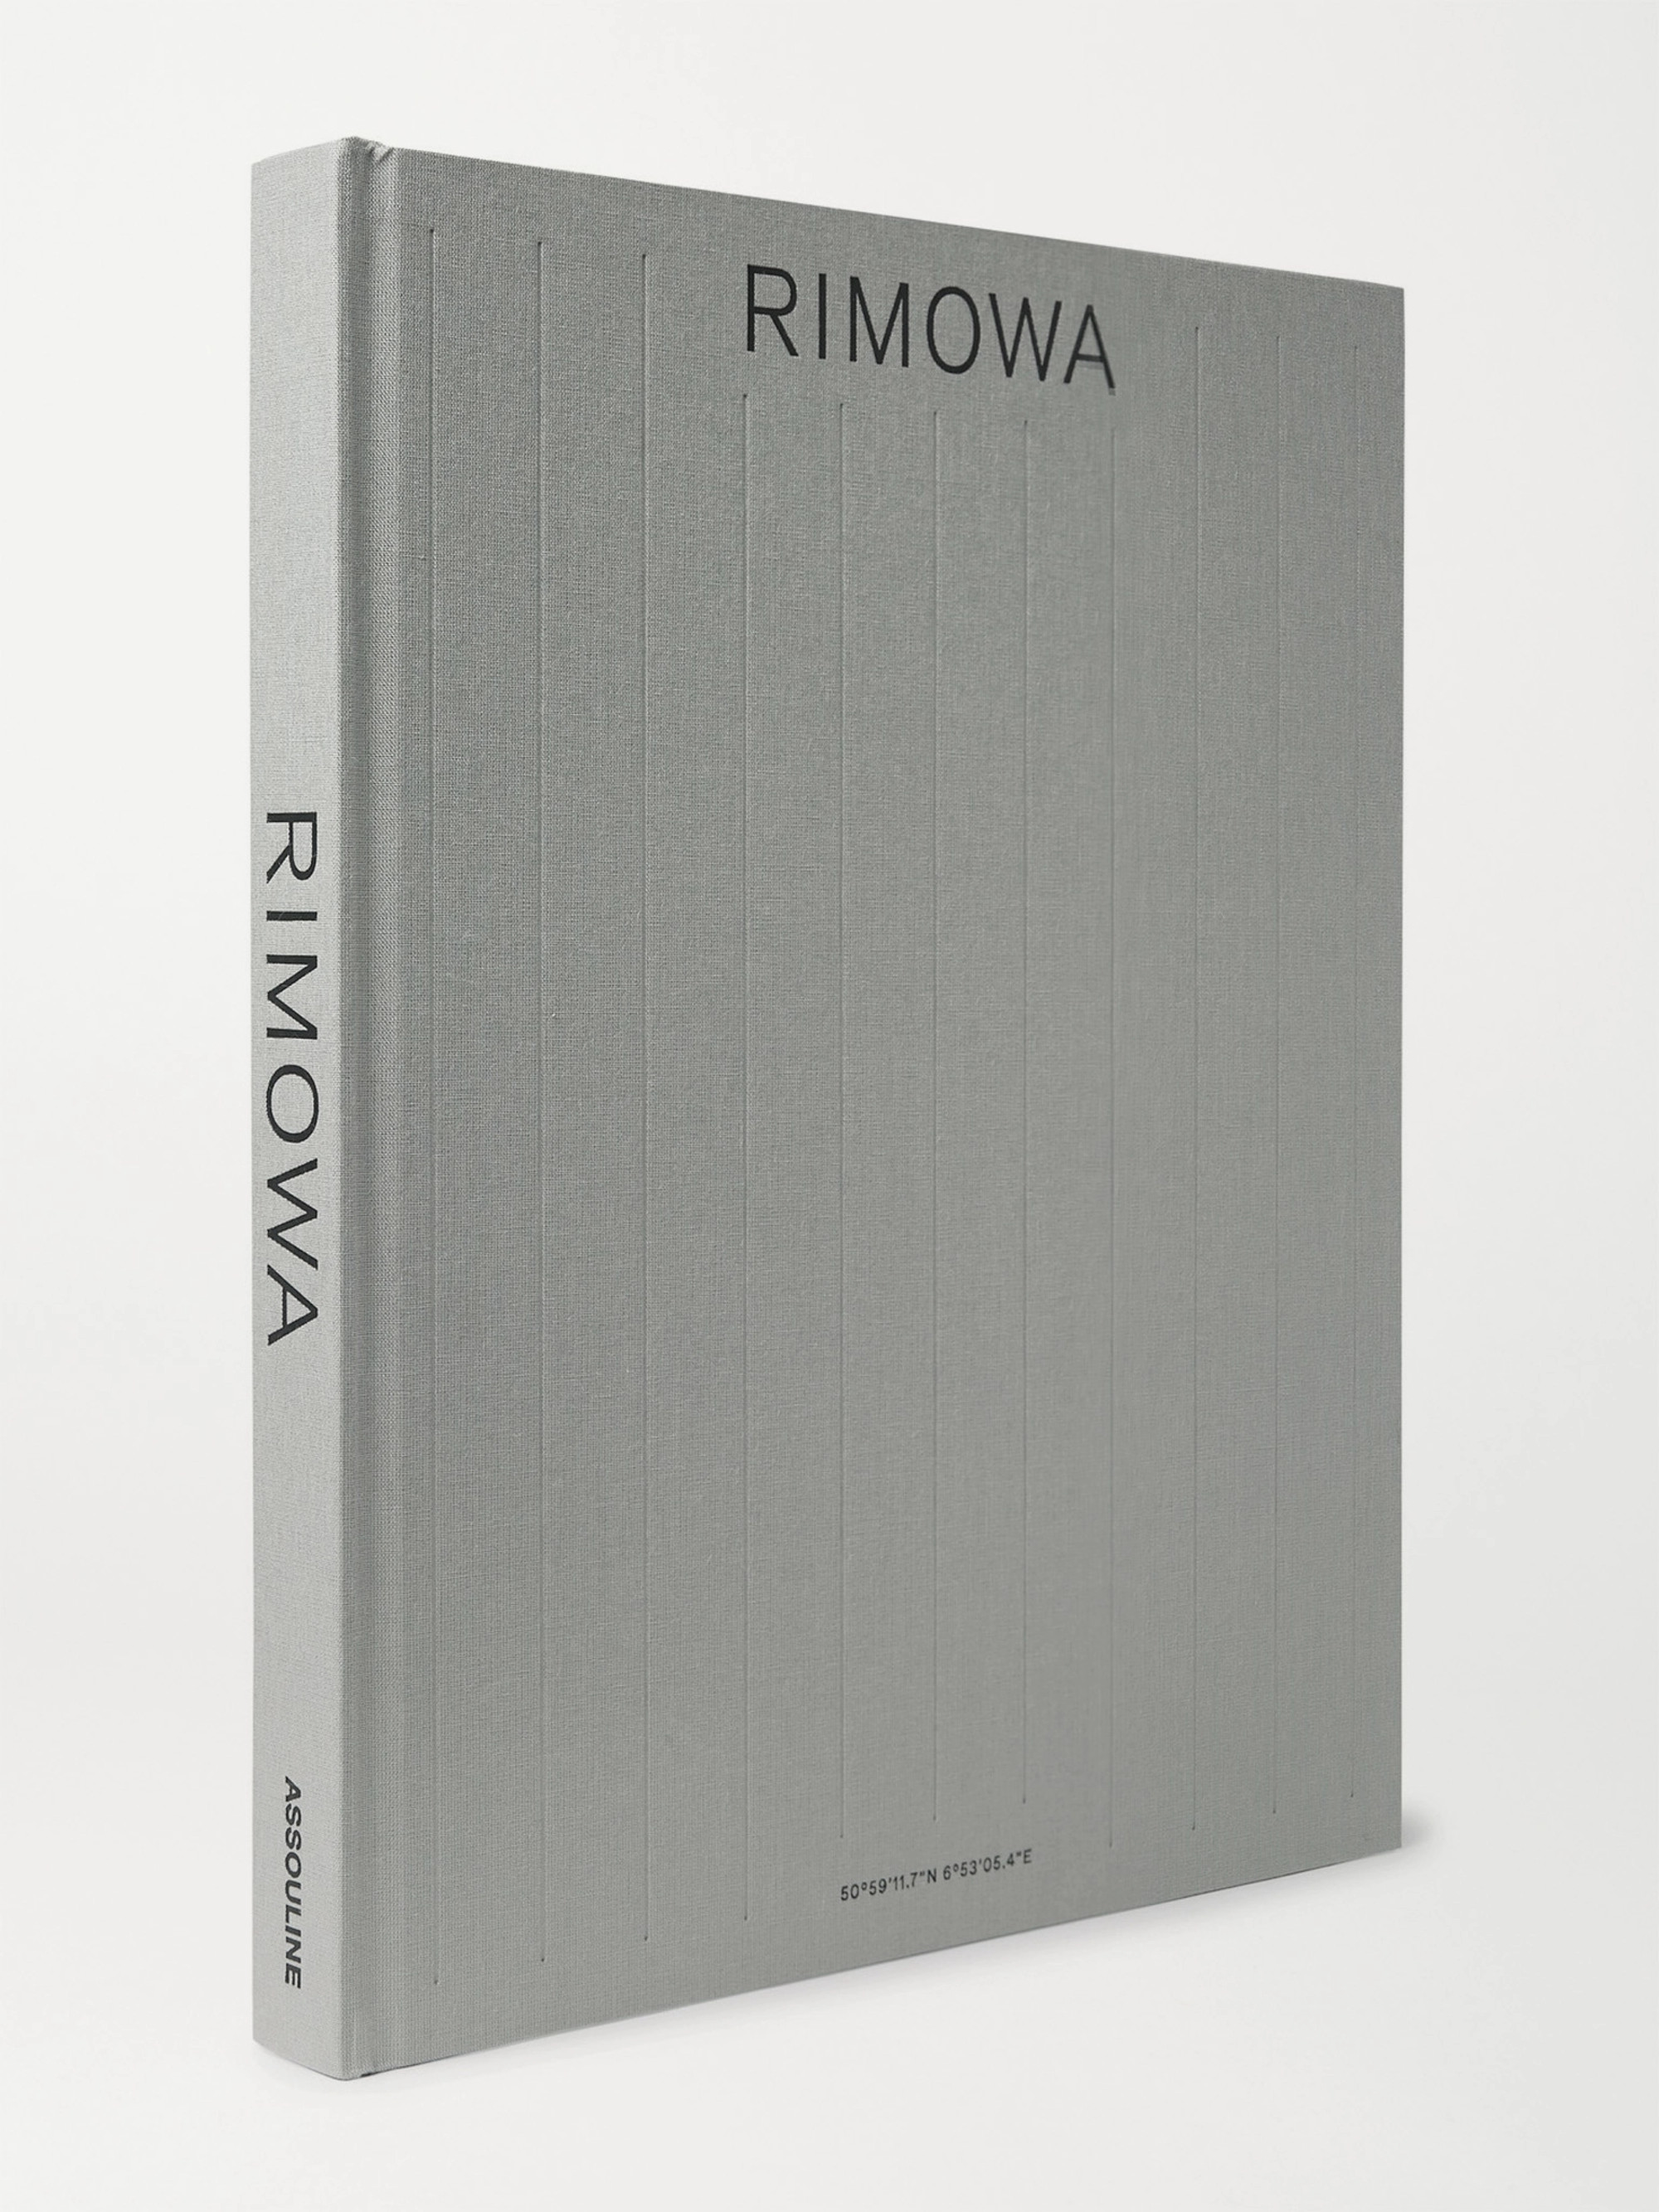 Assouline RIMOWA Hardcover Book